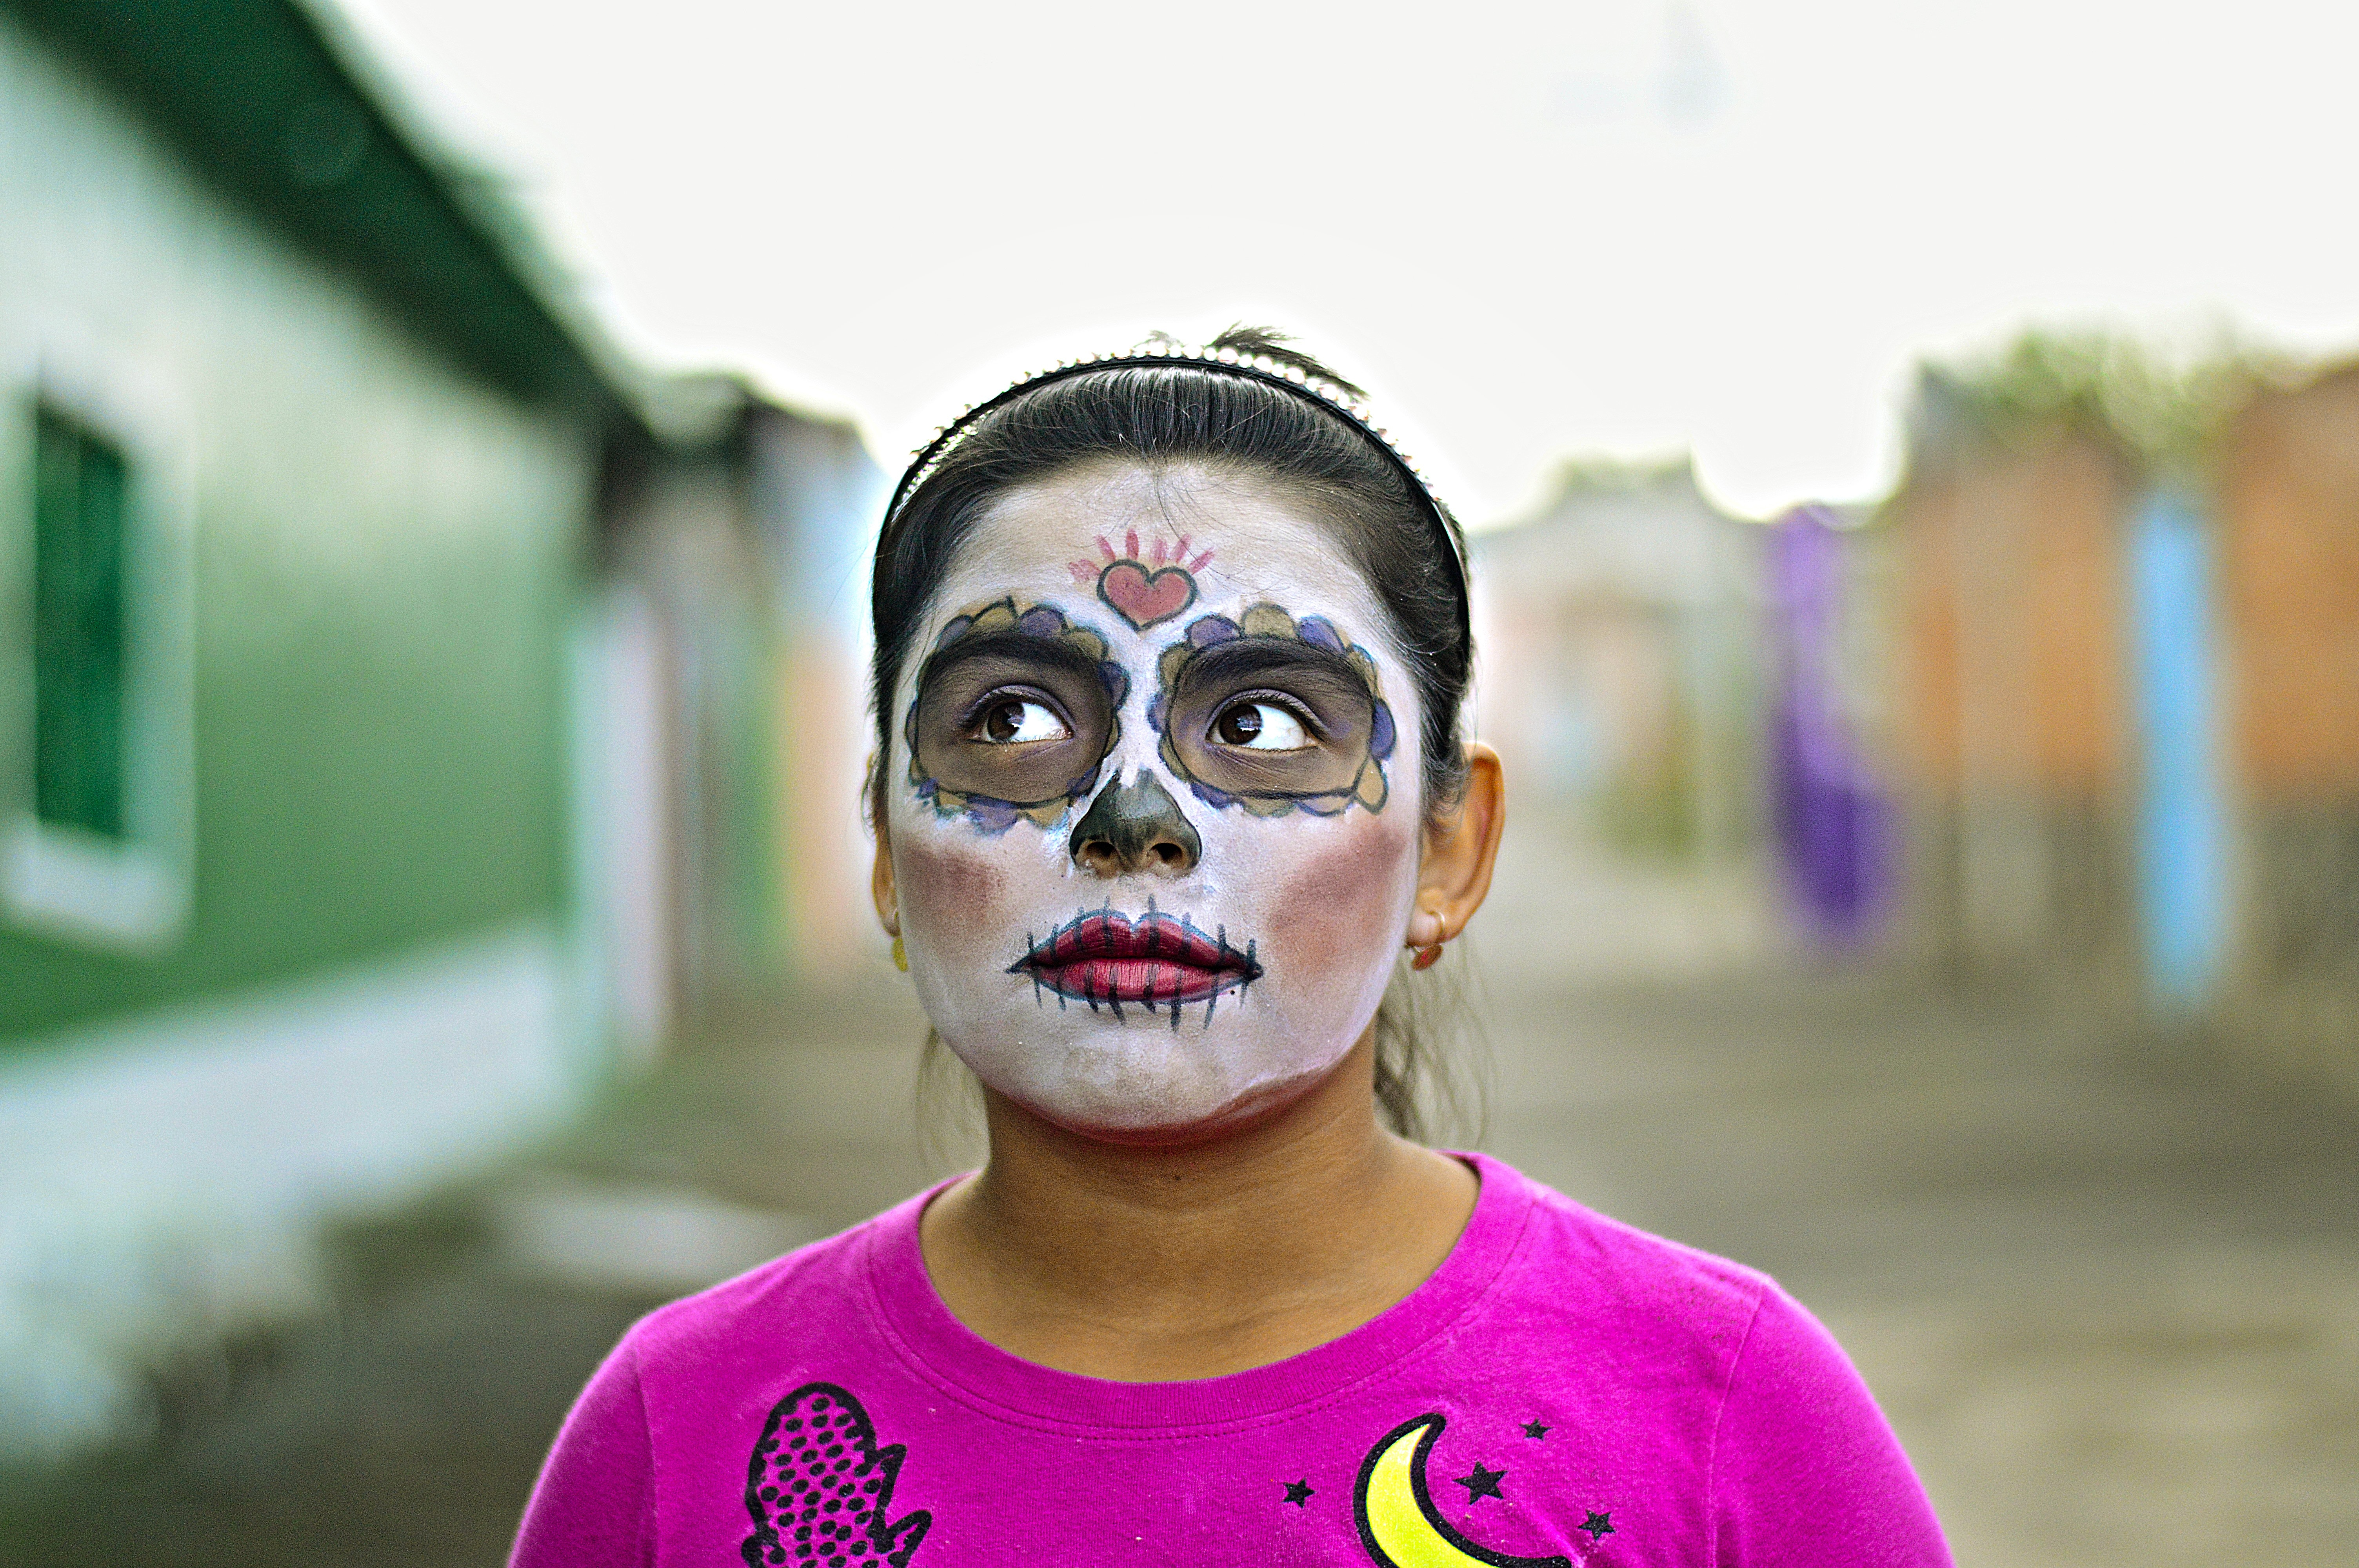 Image of a girl with her face painted to celebrate Dia de Los Muertos in Mexico City